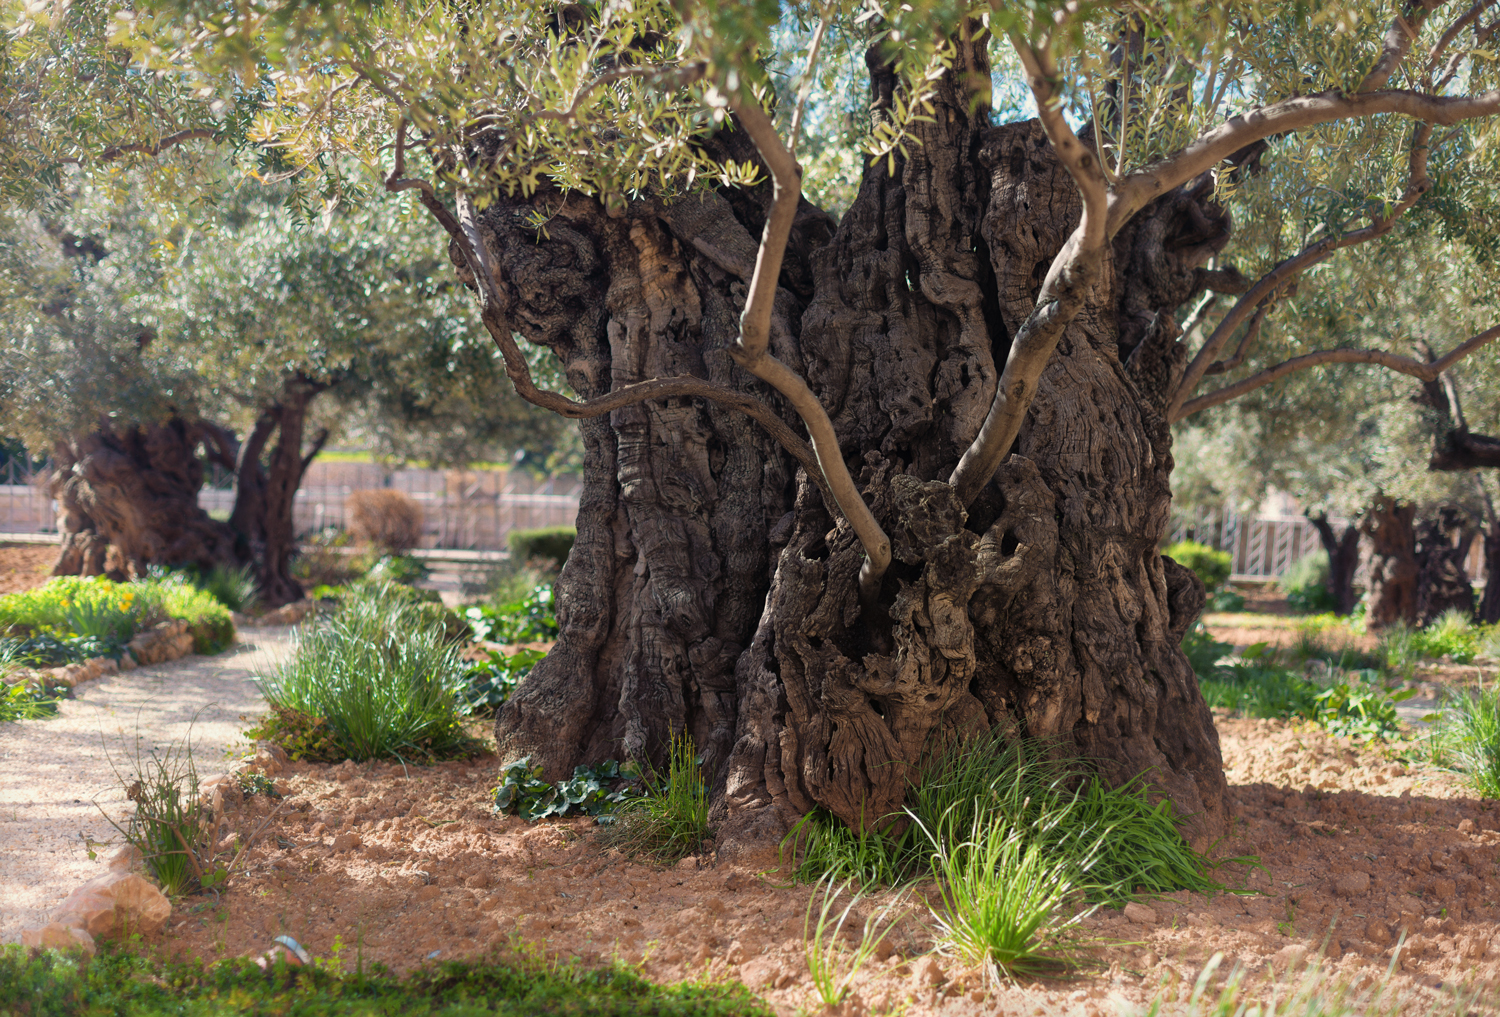 An old olive tree in the Garden of Gethsemane.